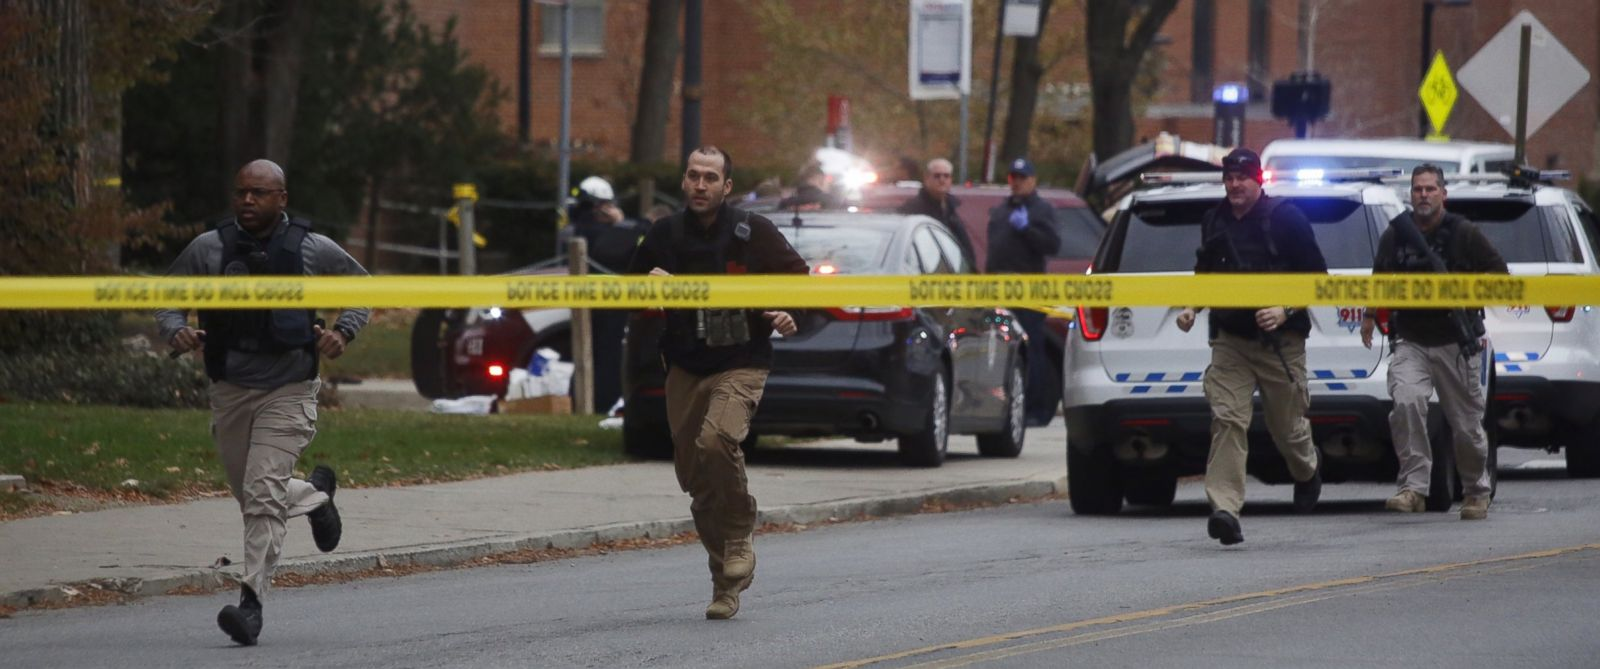 Calls for Gun Control After Shooting That Never Happened